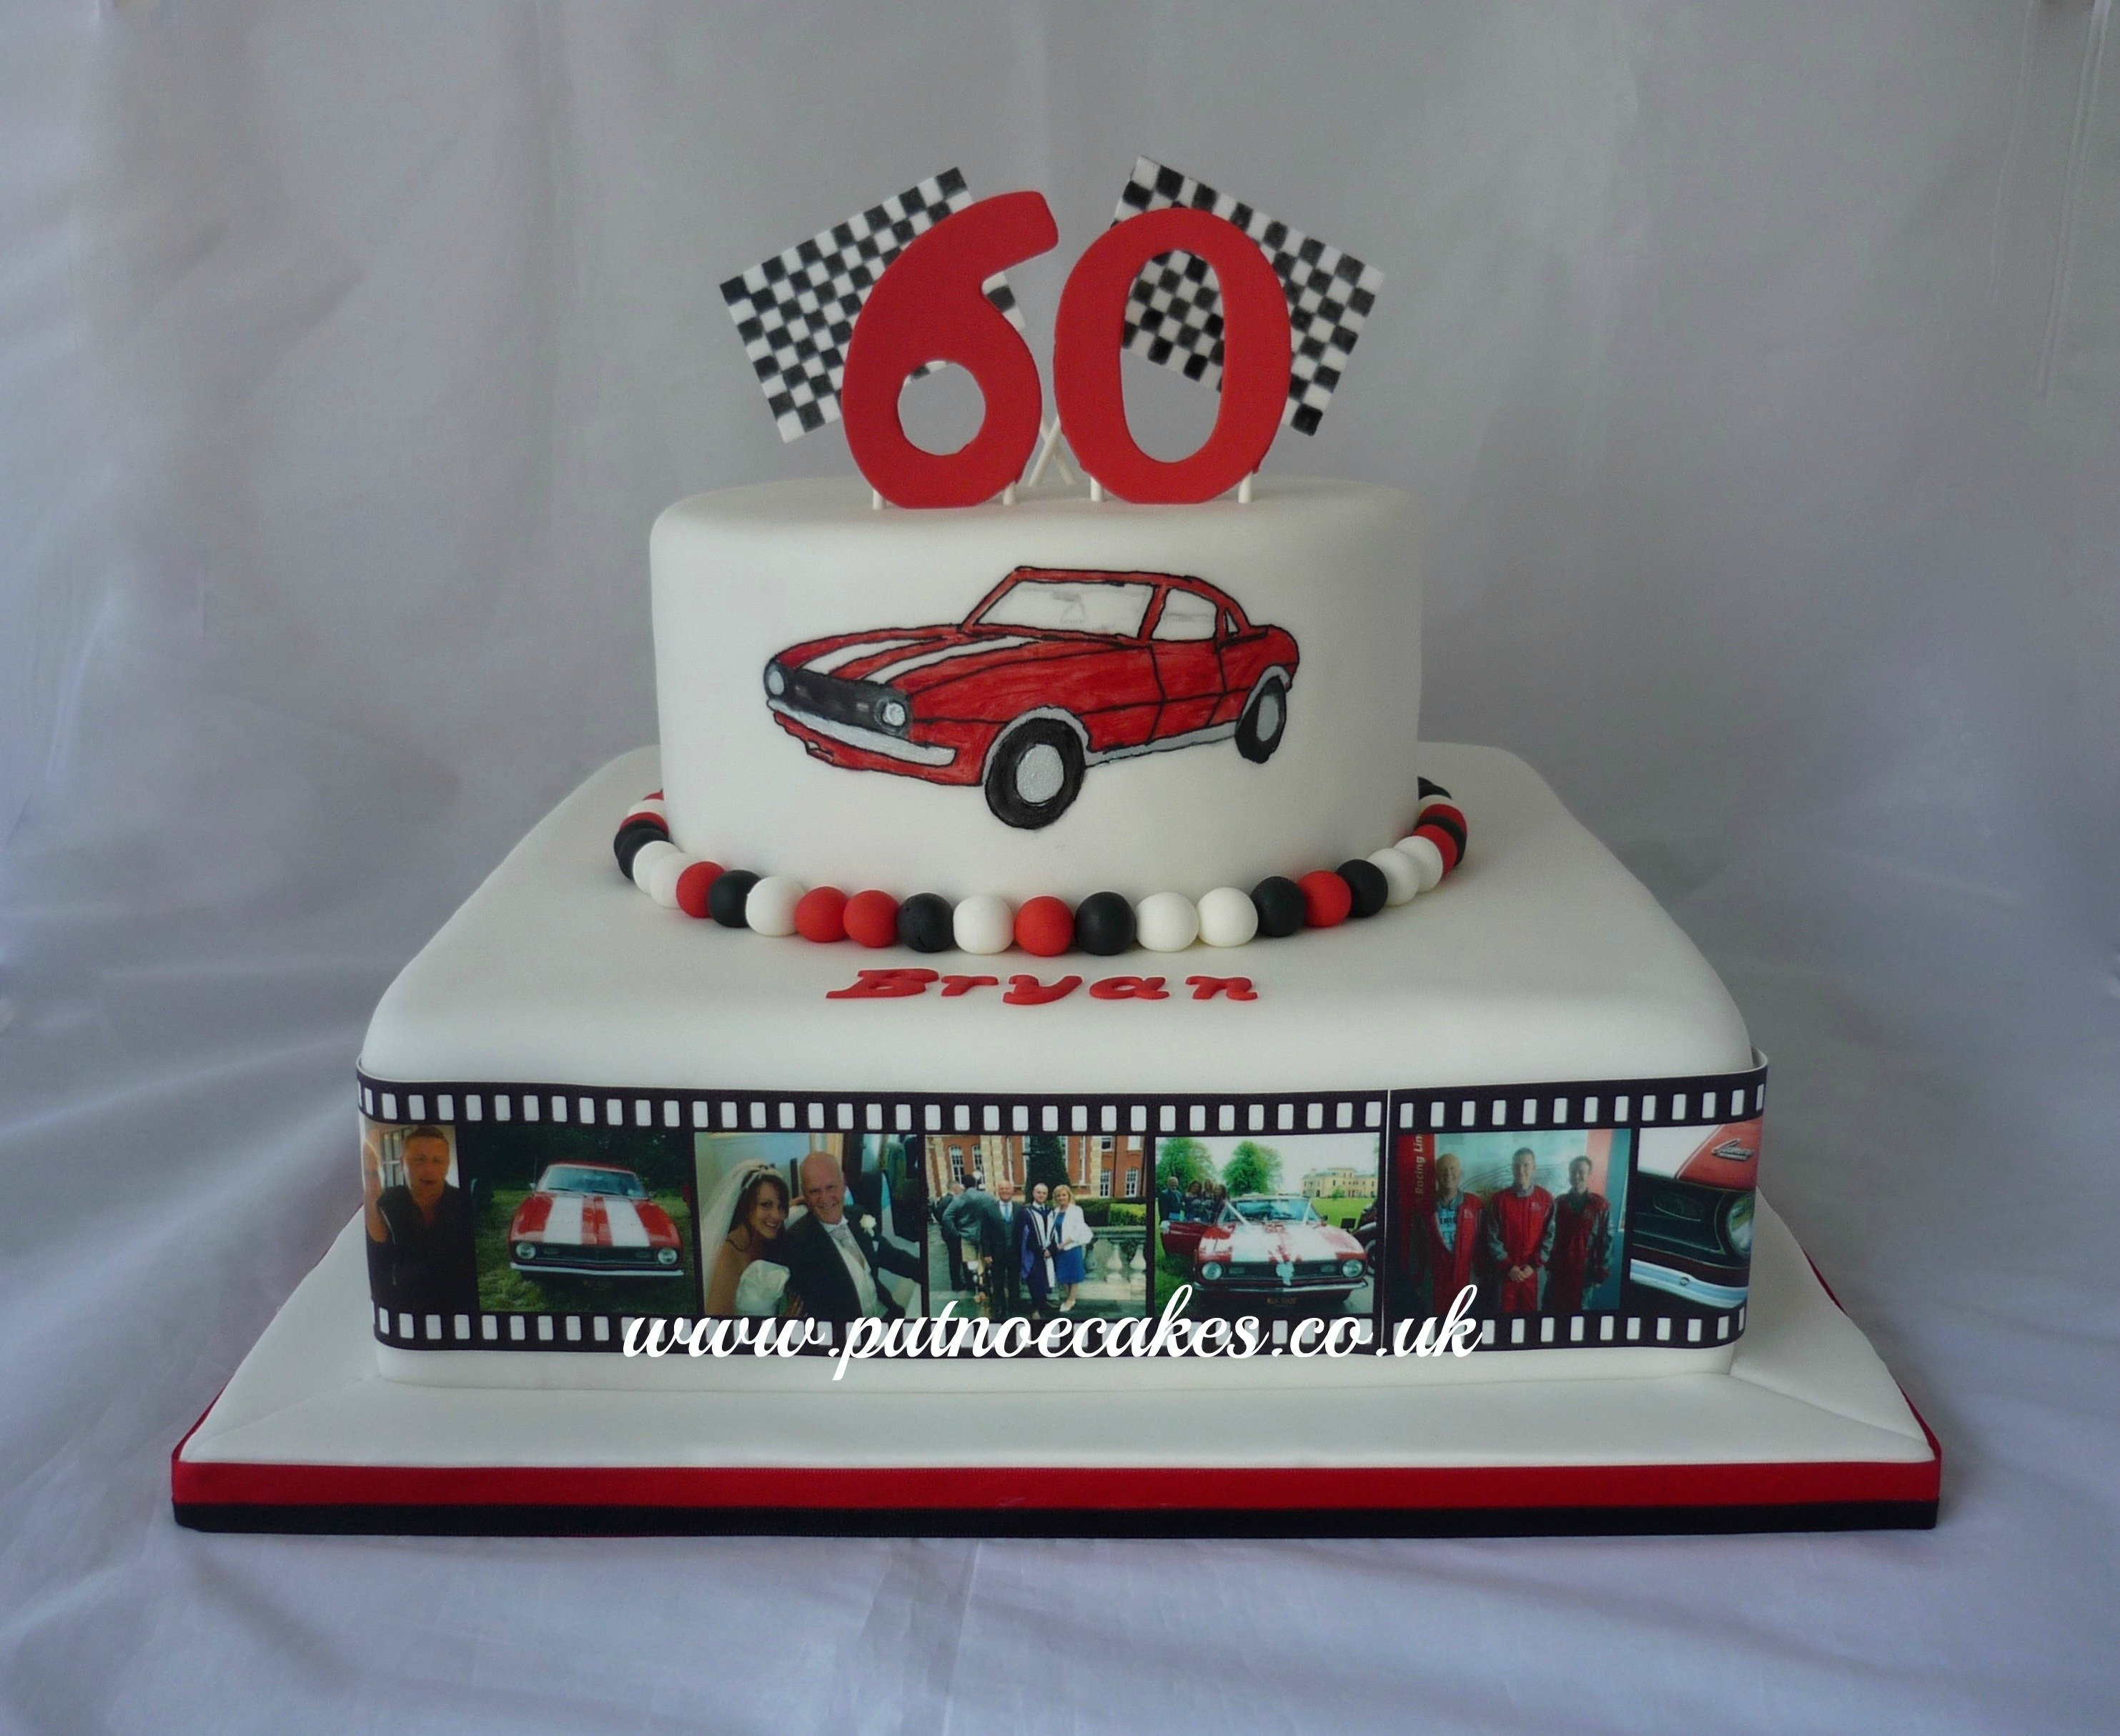 10 Spectacular 60Th Birthday Cake Ideas For Men Mens Cakes Putnoe